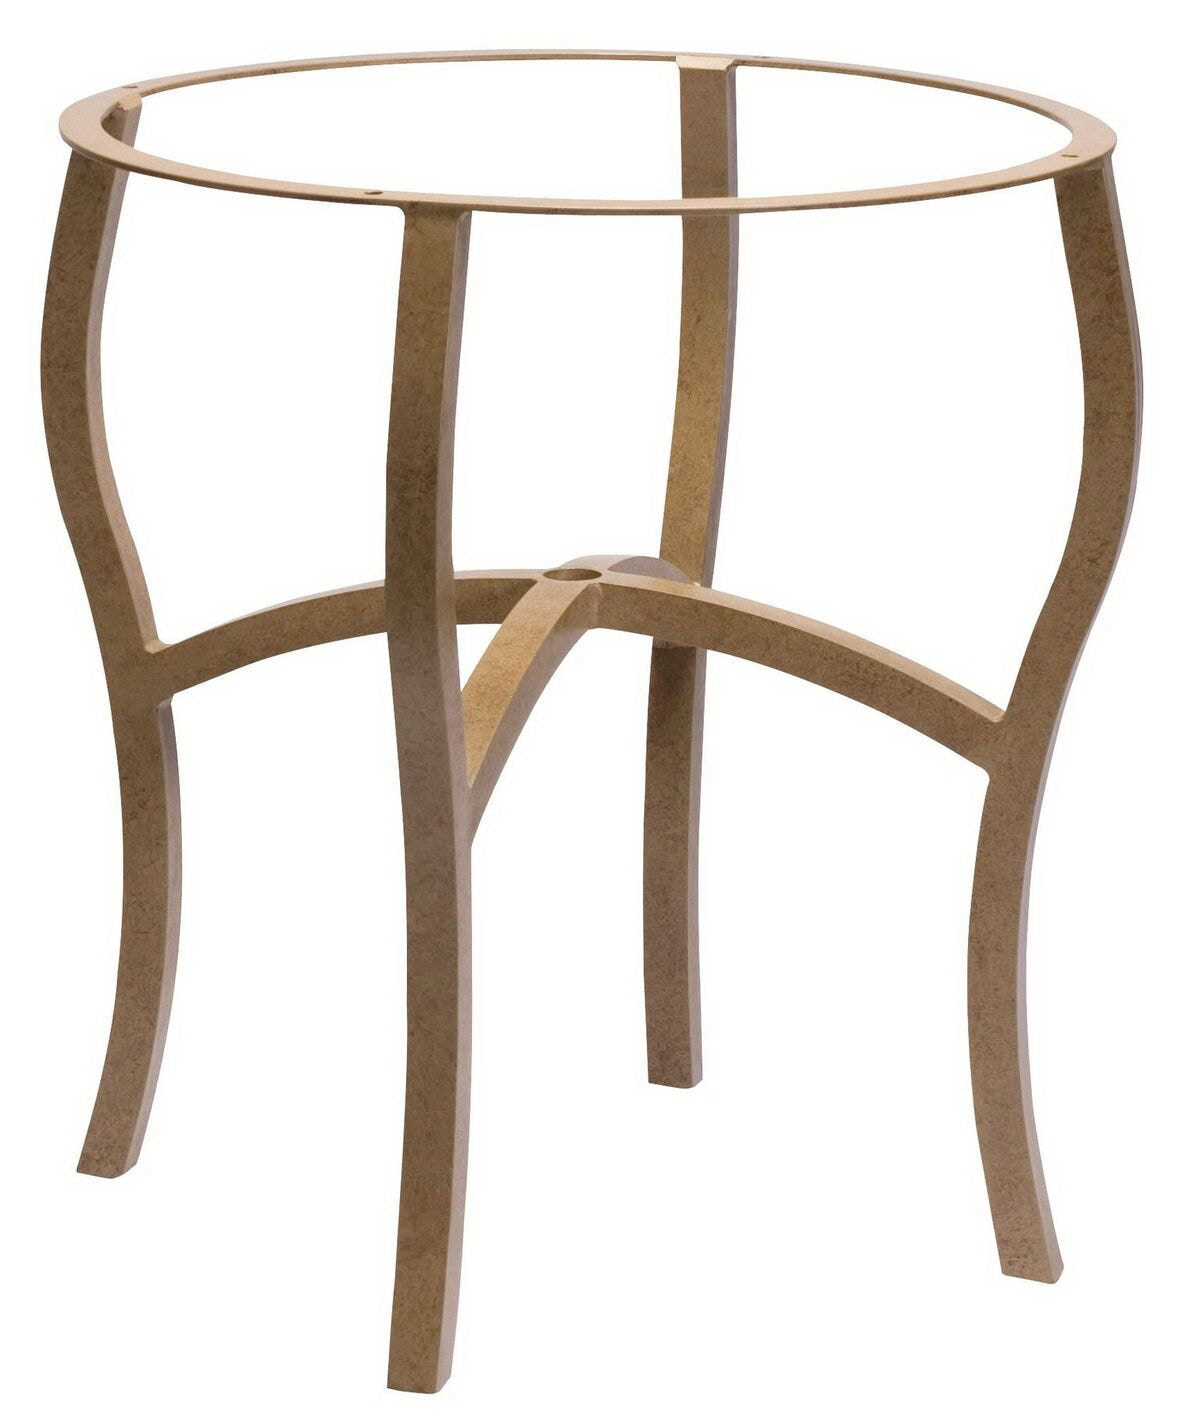 Woodard Table Bases   Carson Counter Height Base By Woodard 5P5500 Call For  Prices   888.643.6003